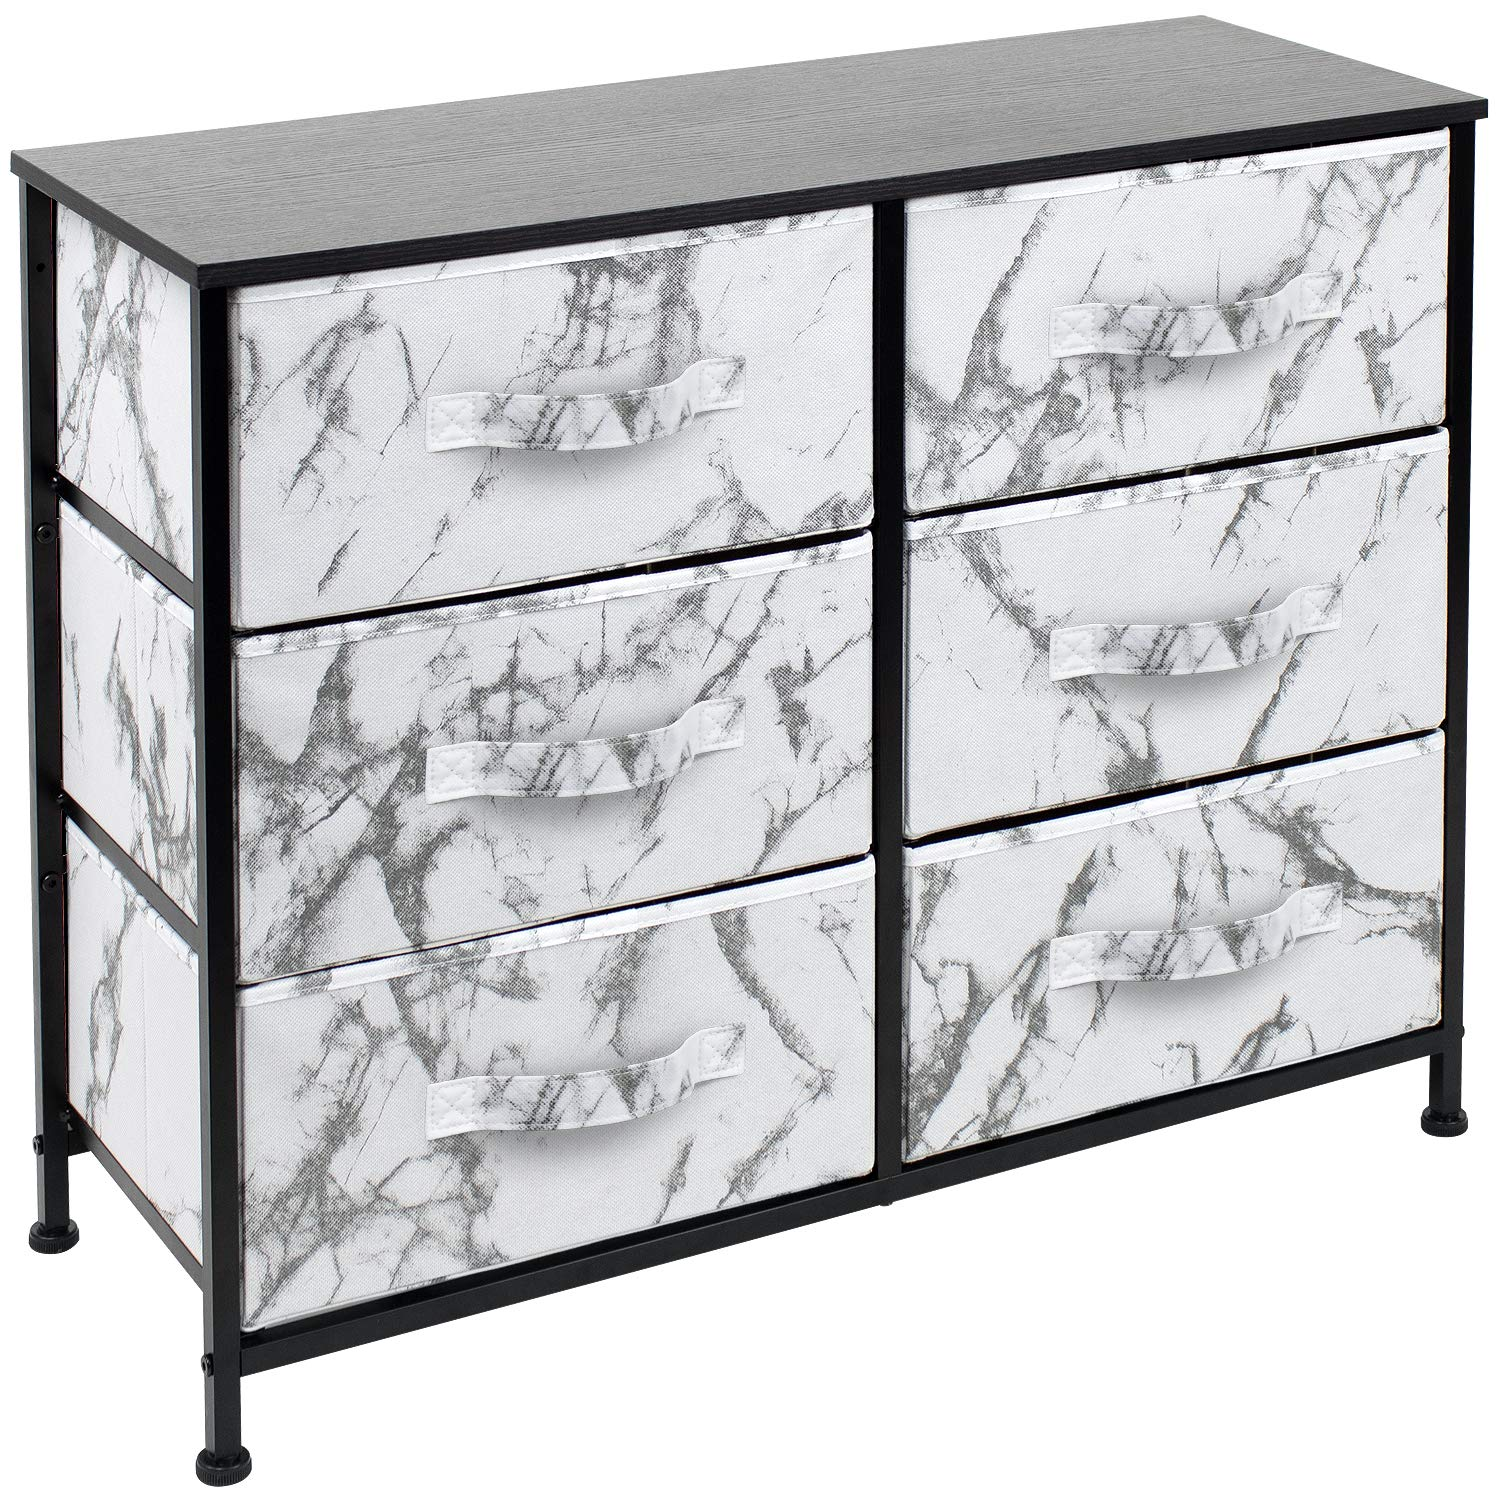 Sorbus Dresser with 6 Drawers - Furniture Storage Chest Tower Unit for Bedroom, Hallway, Closet, Office Organization - Steel Frame, Wood Top, Easy Pull Fabric Bins (Marble White – Black Frame)